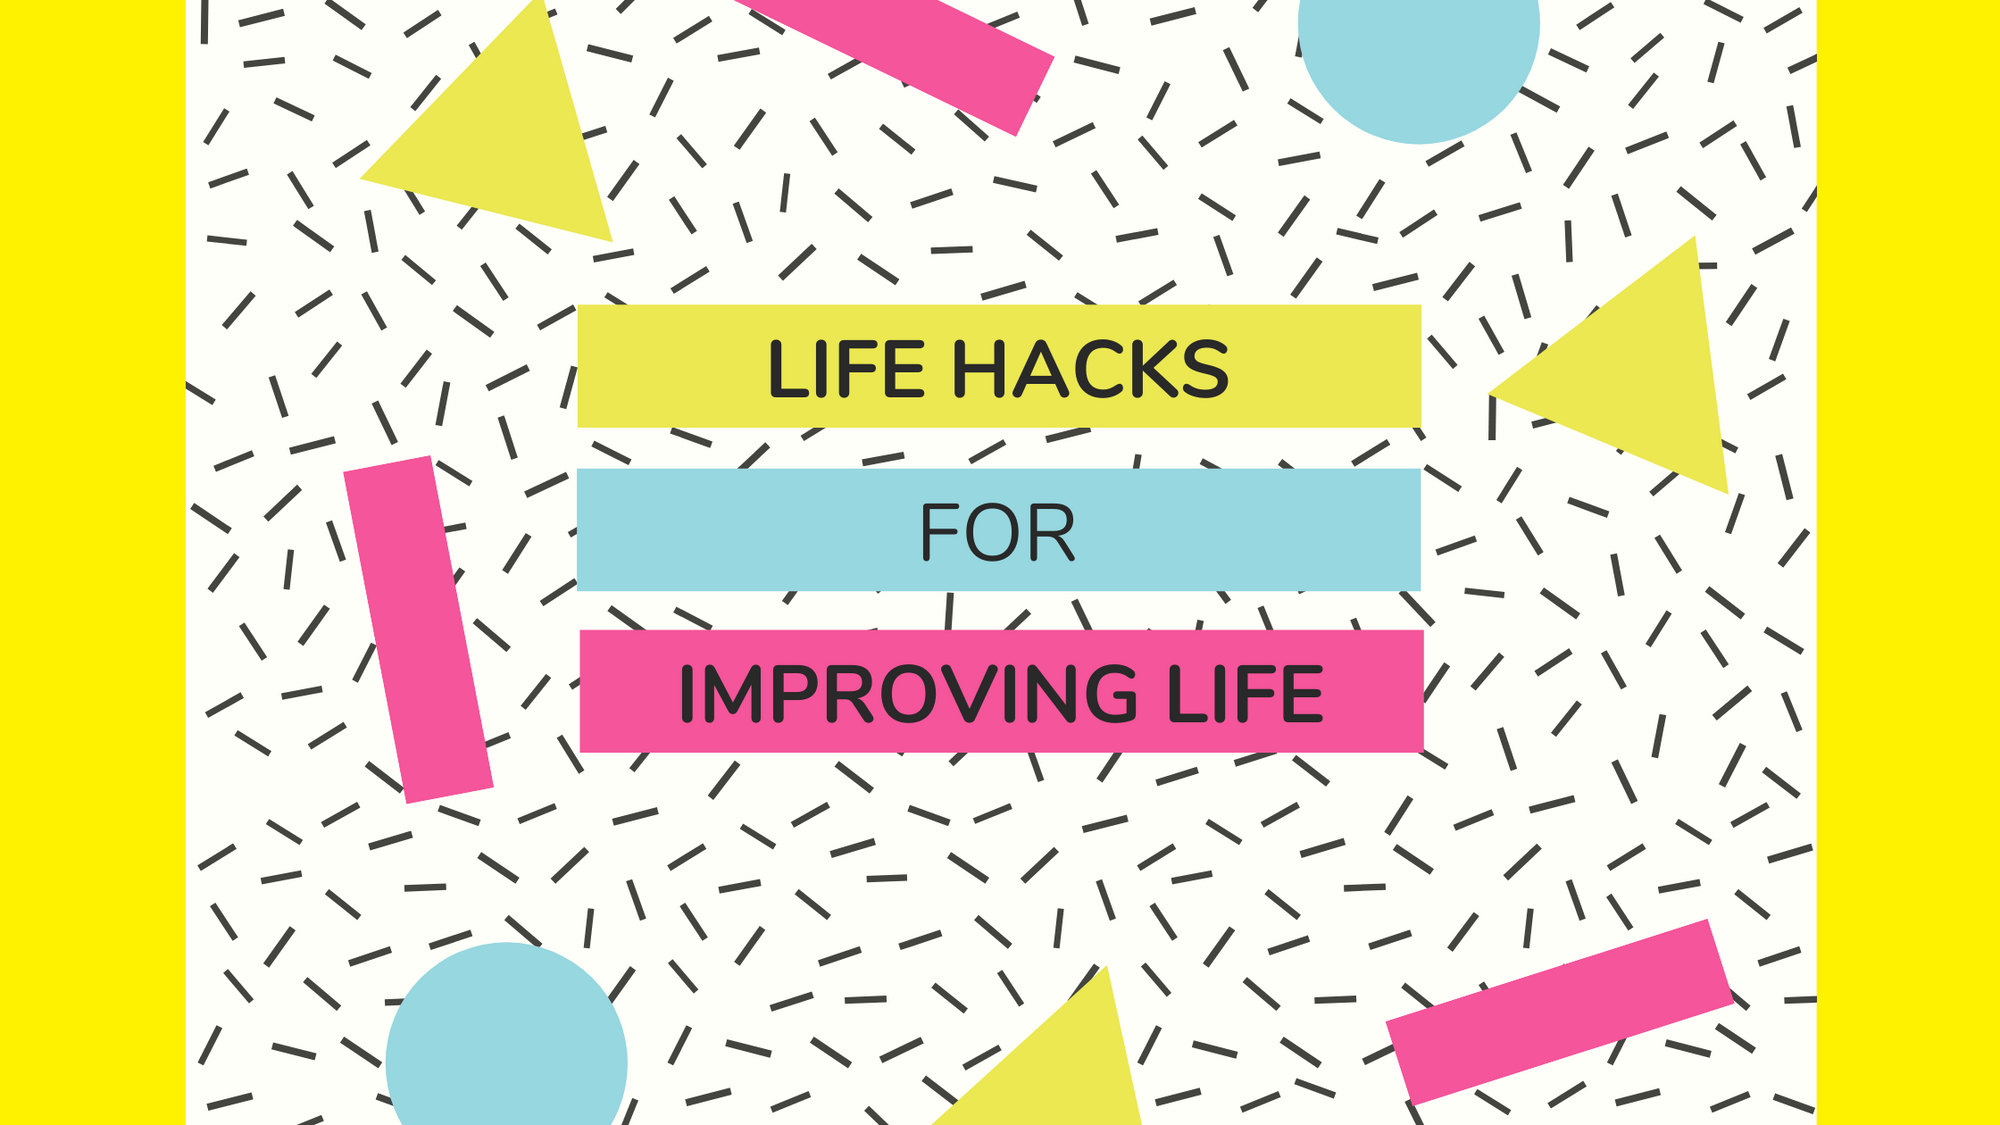 Tips to Improve your Life